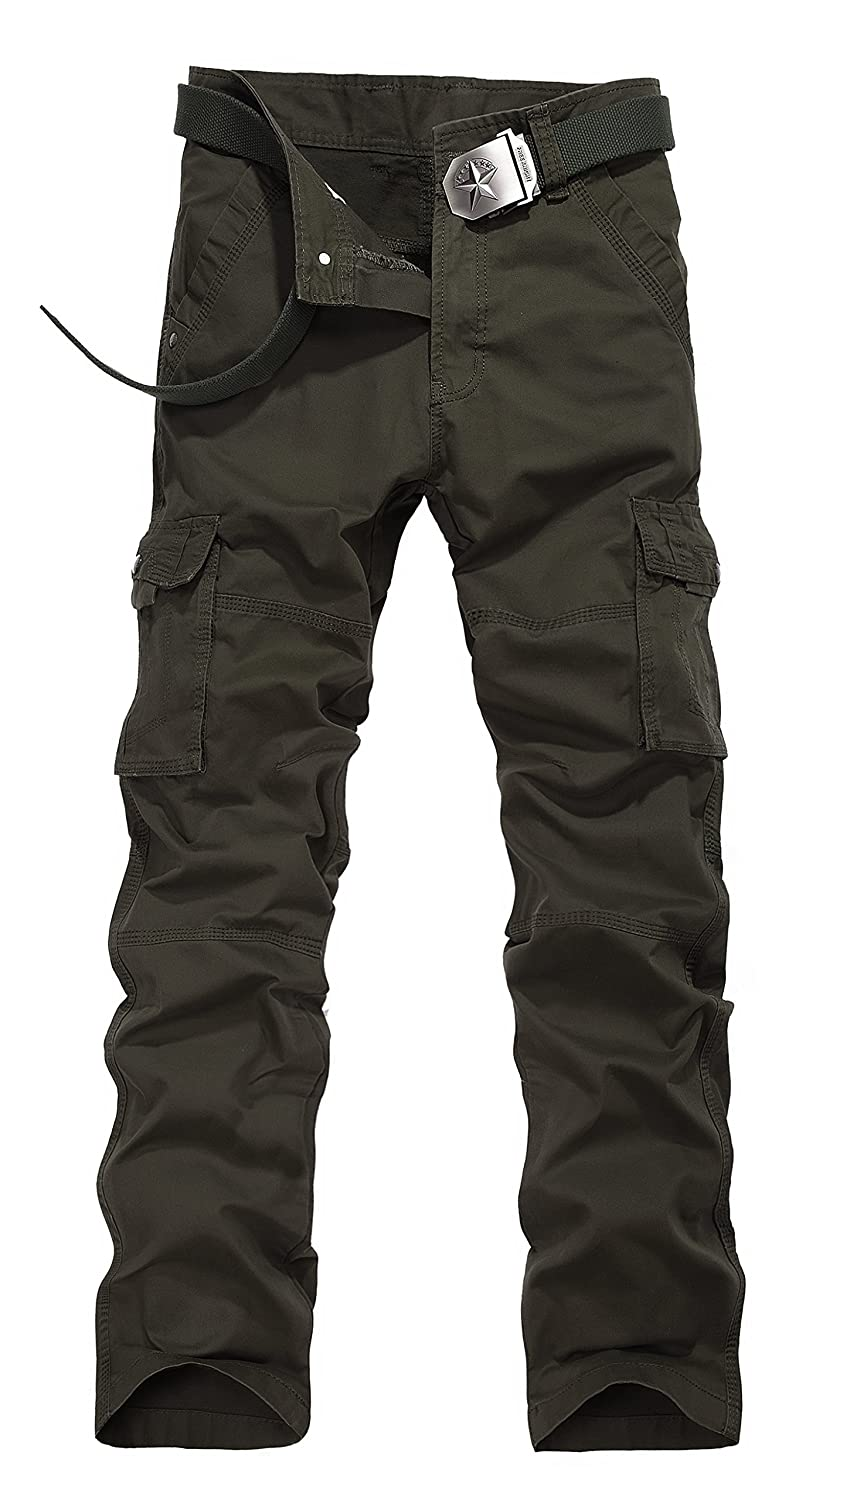 Colorfulworldstore Cotton Mens Combat Pocket Pants Cargo Casual Outdoor Trousers